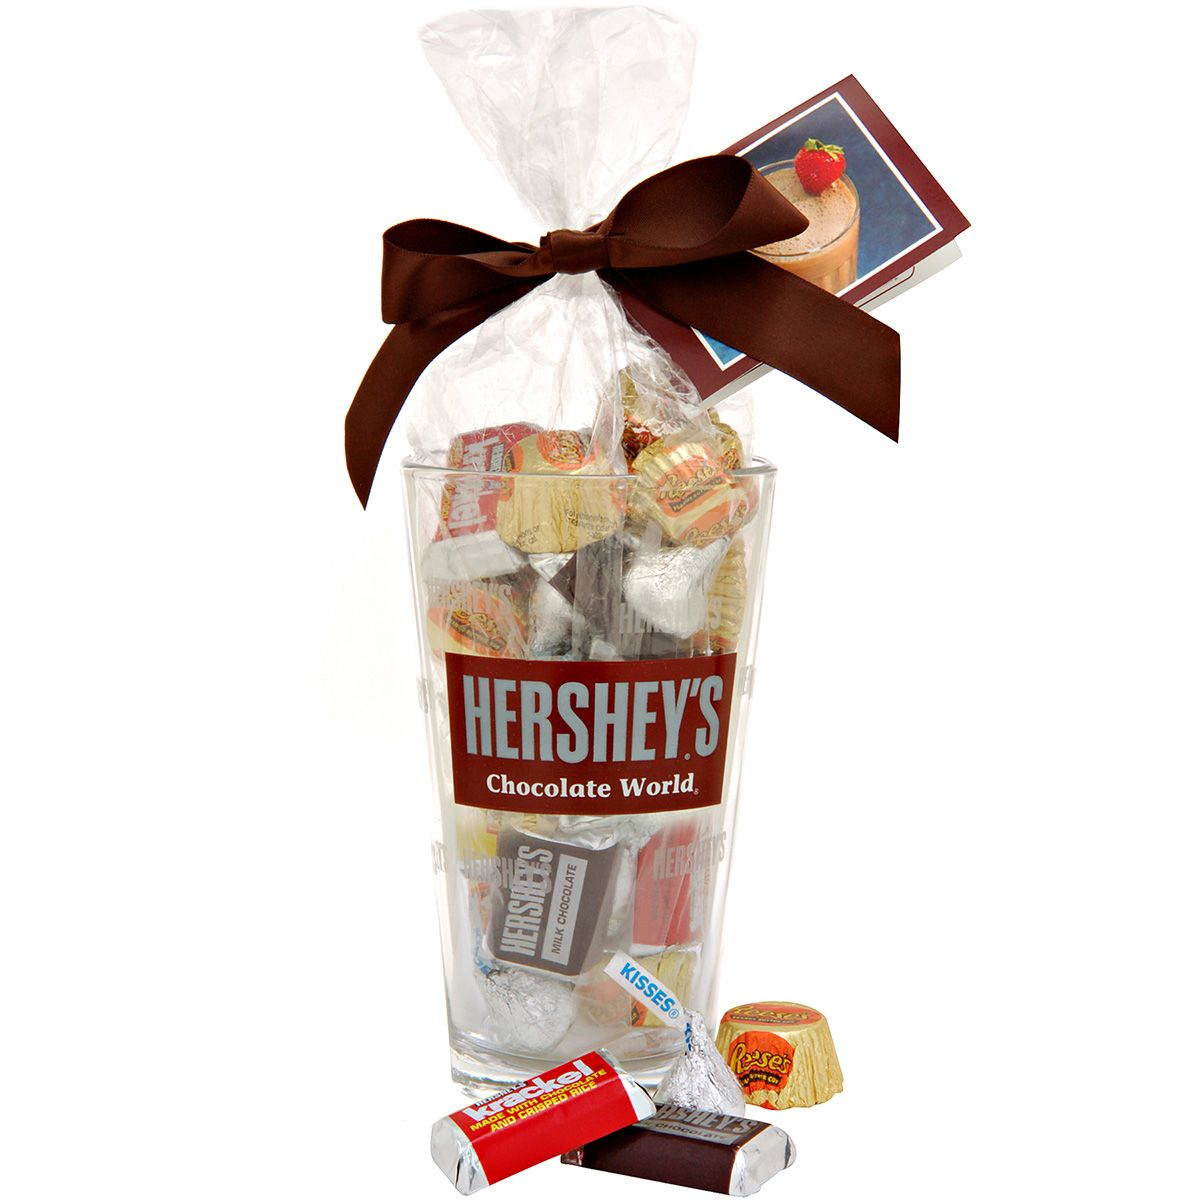 HERSHEY'S Chocolate World Attraction Filled Glass, Filled with yummy HERSHEY'S Assorted Miniatures, REESE'S Peanut Butter Cup Miniatures and HERSHEY'S KISSES Milk Chocolates.